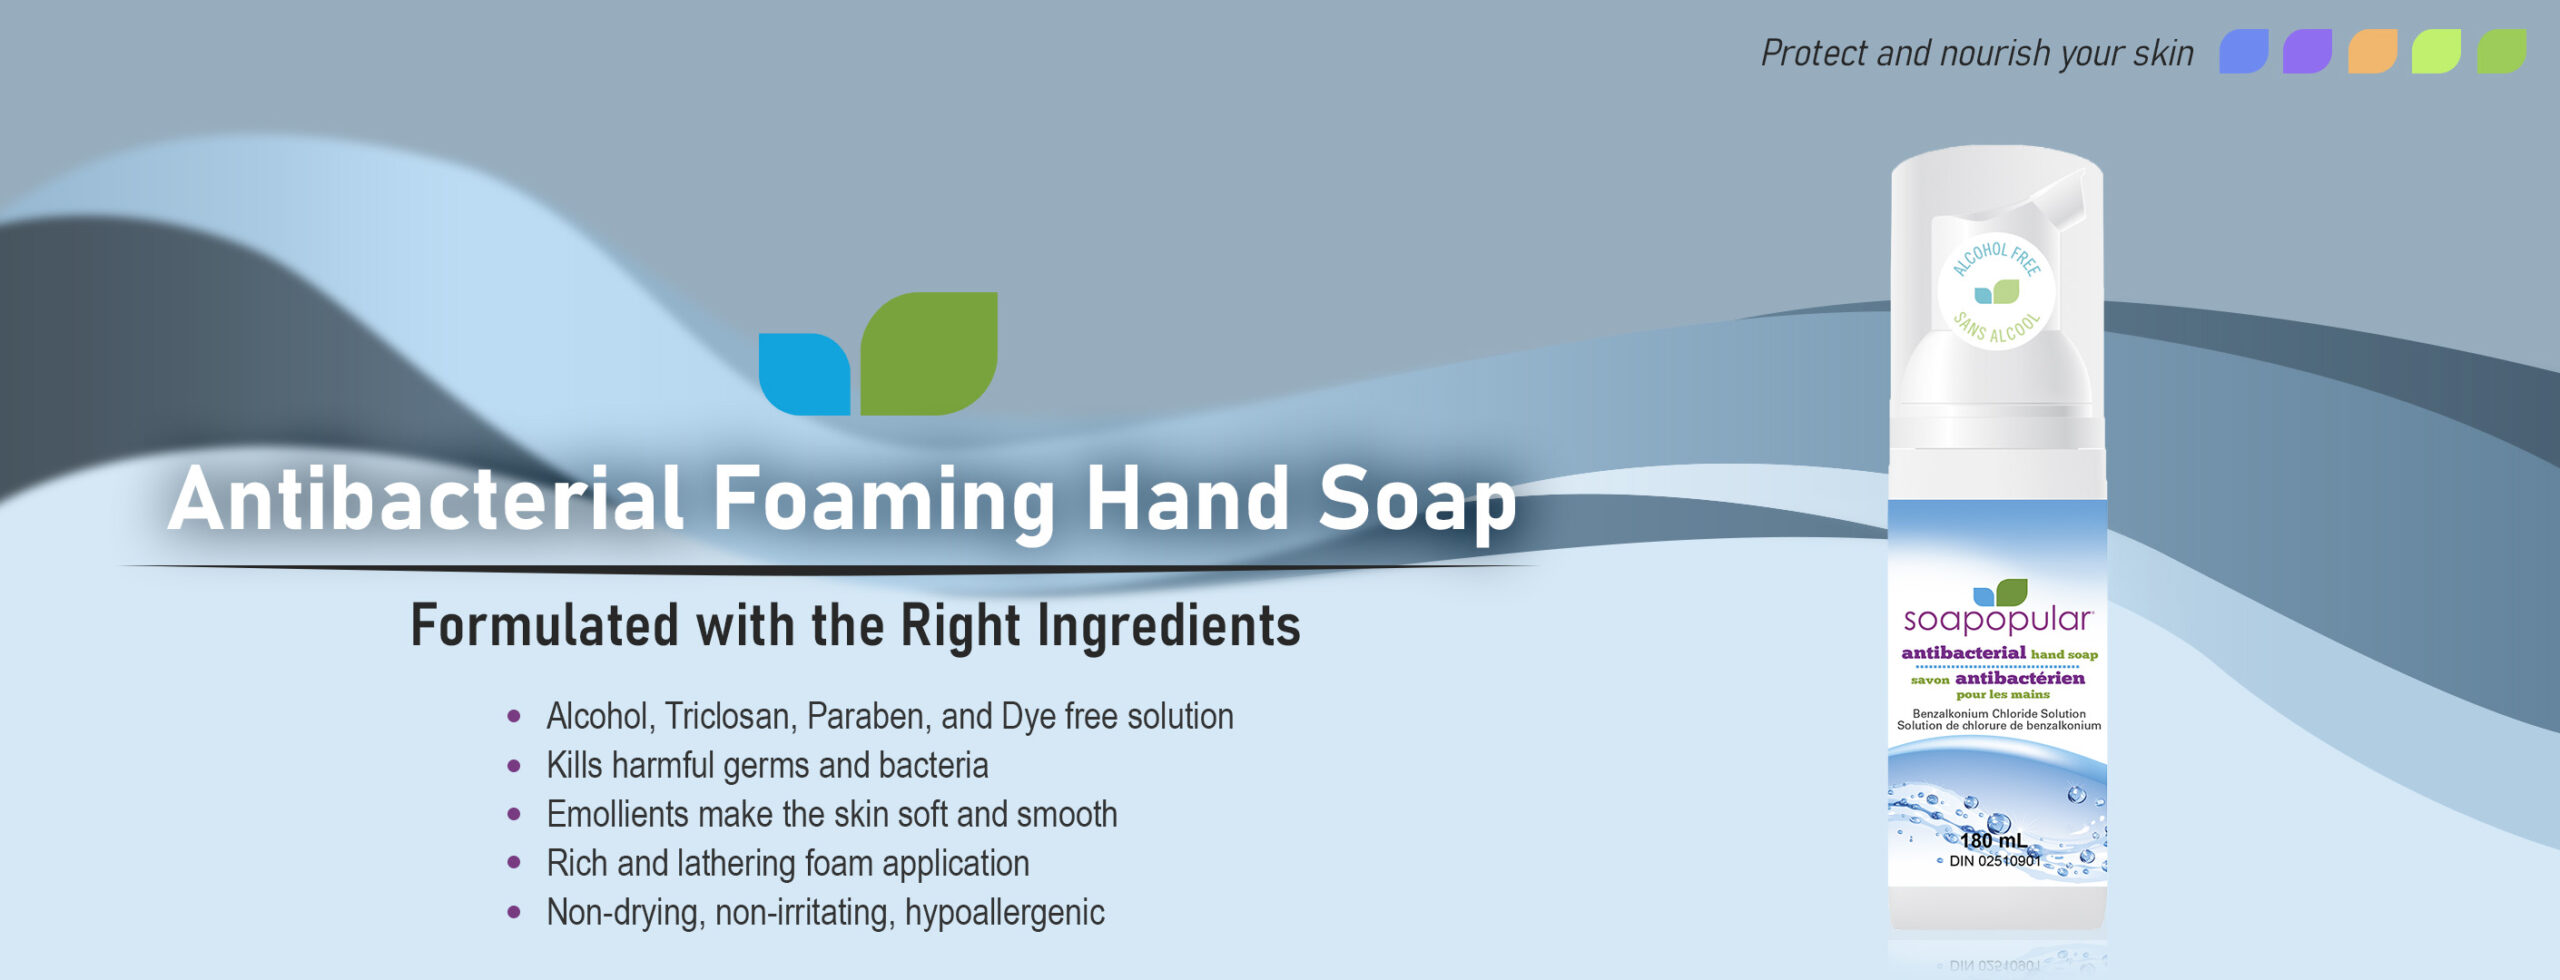 antibacterial home page banner